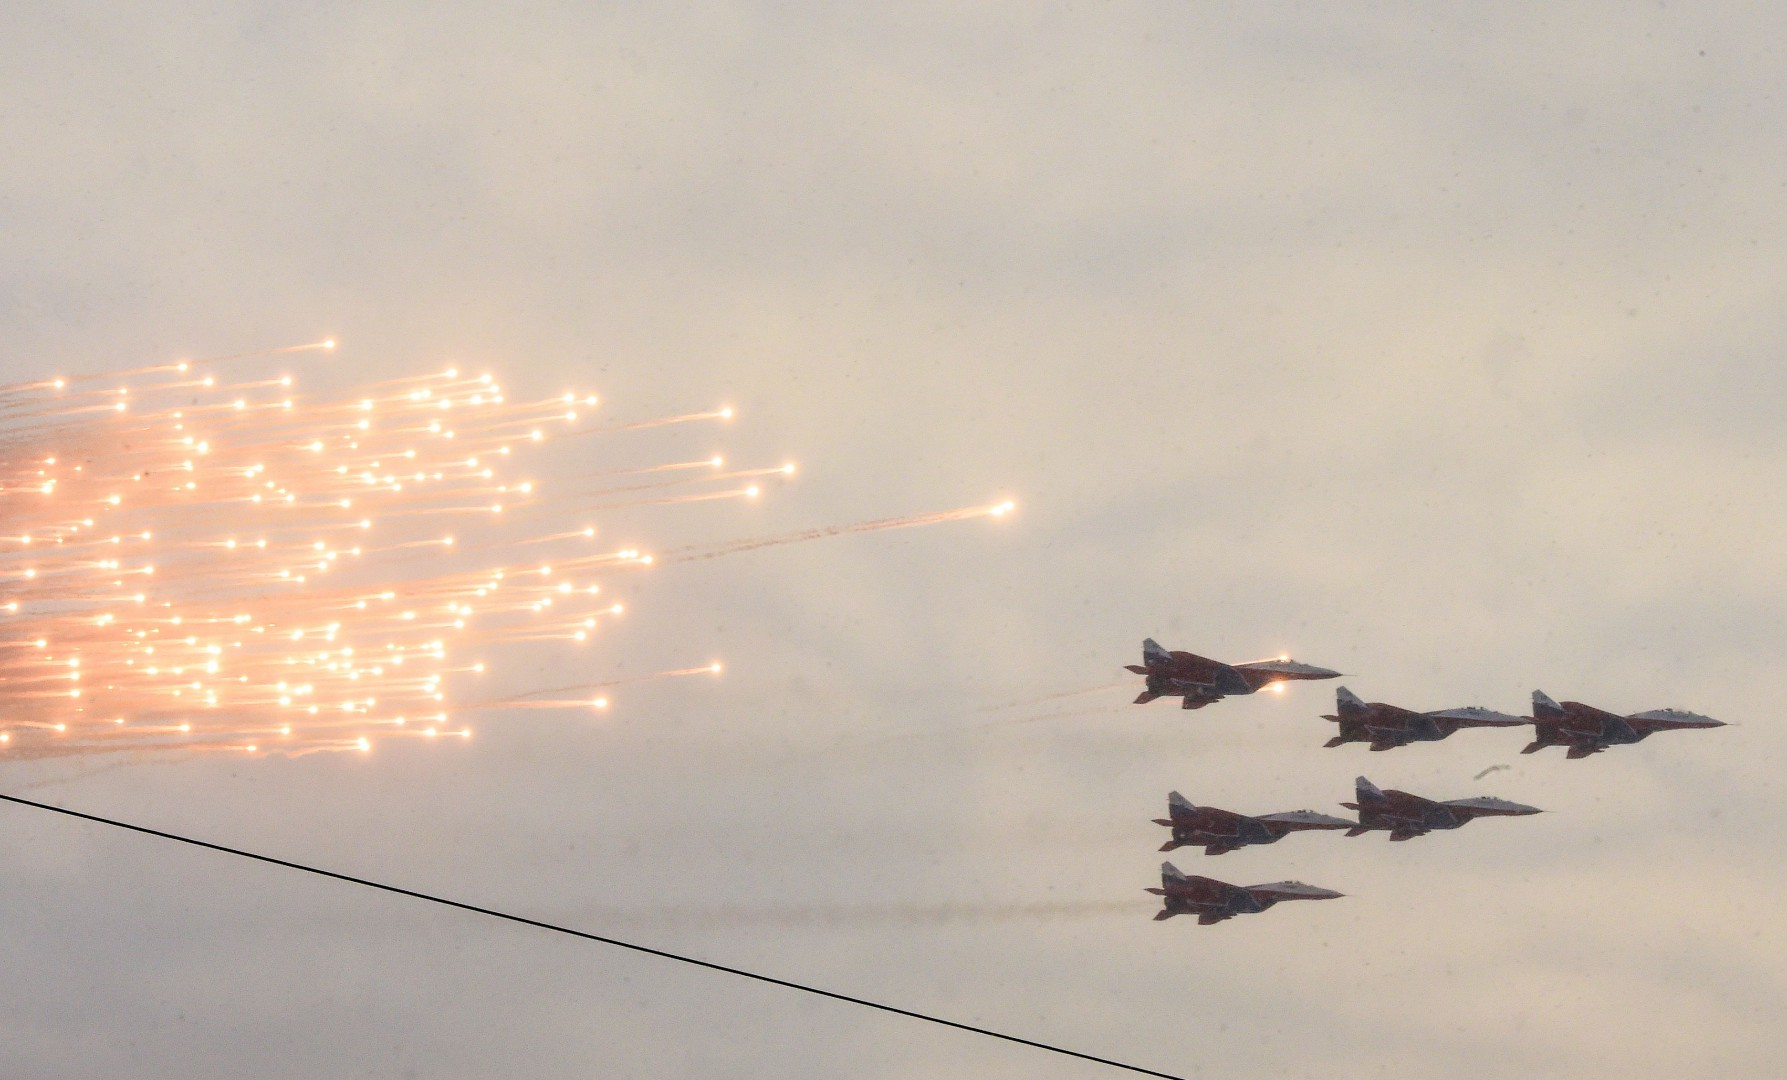 TOPSHOT - Russian military jets fly during the military parade marking the 75th anniversary of the lifting of the Nazi siege of Leningrad, at Dvortsovaya Square in Saint Petersburg on January 27, 2019. - Tanks and air defence missile systems rolled through the heart of Saint Petersburg on Sunday as the city formerly known as Leningrad marked the 75th anniversary of the end of a World War II siege that claimed more than 800,000 lives. (Photo by OLGA MALTSEVA / AFP)